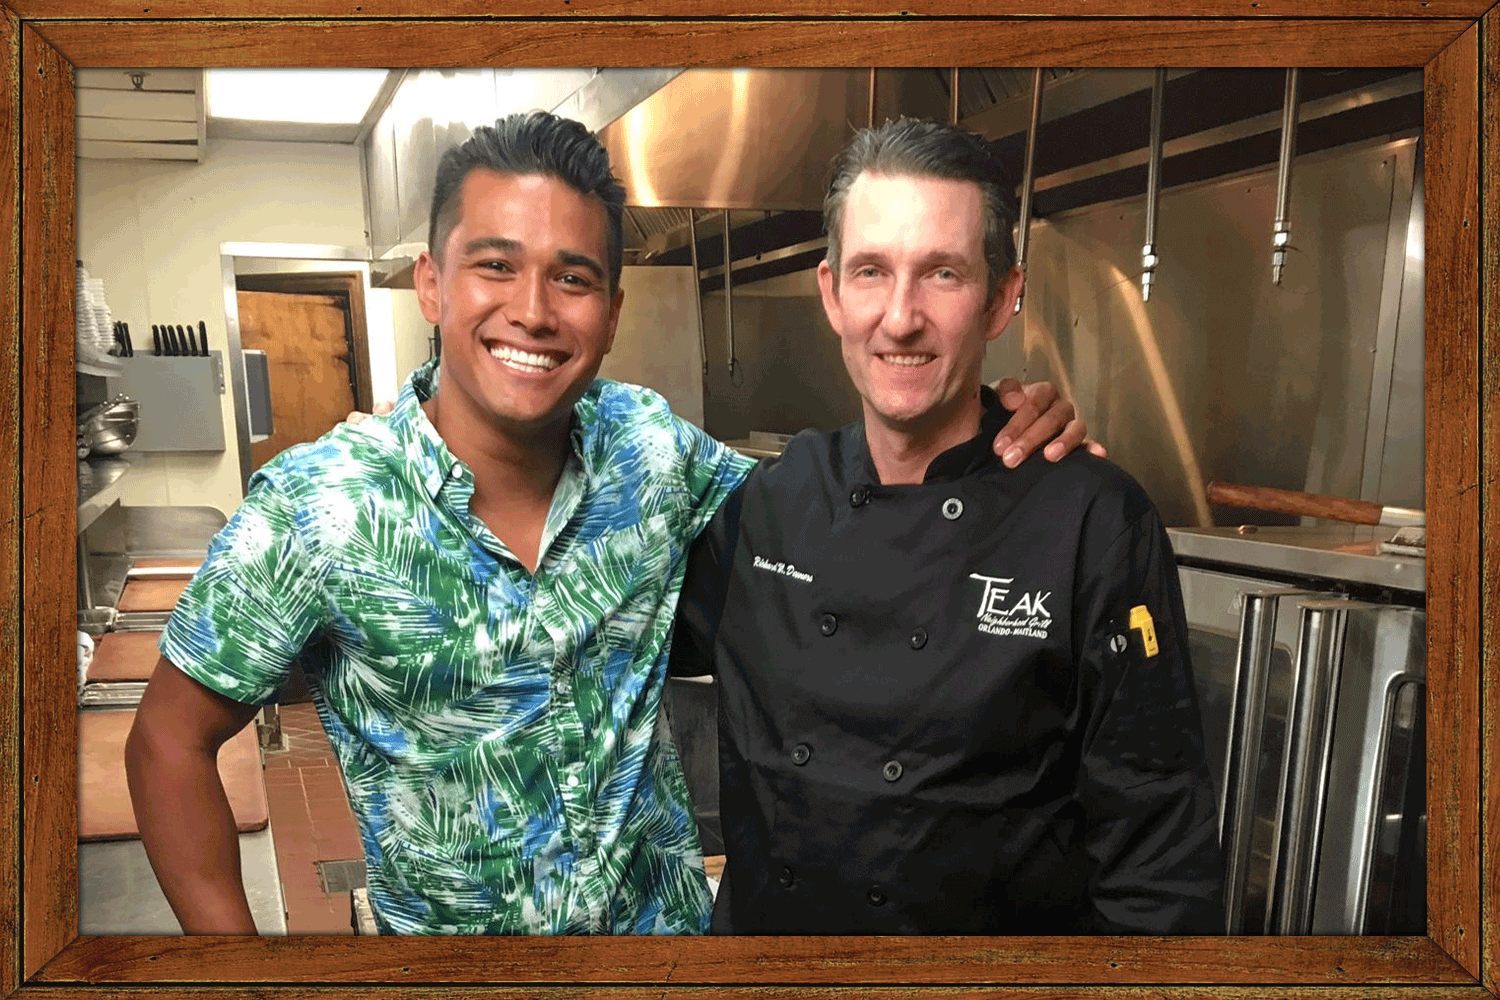 Chef Jordan Andino and Chef Ricky Demers